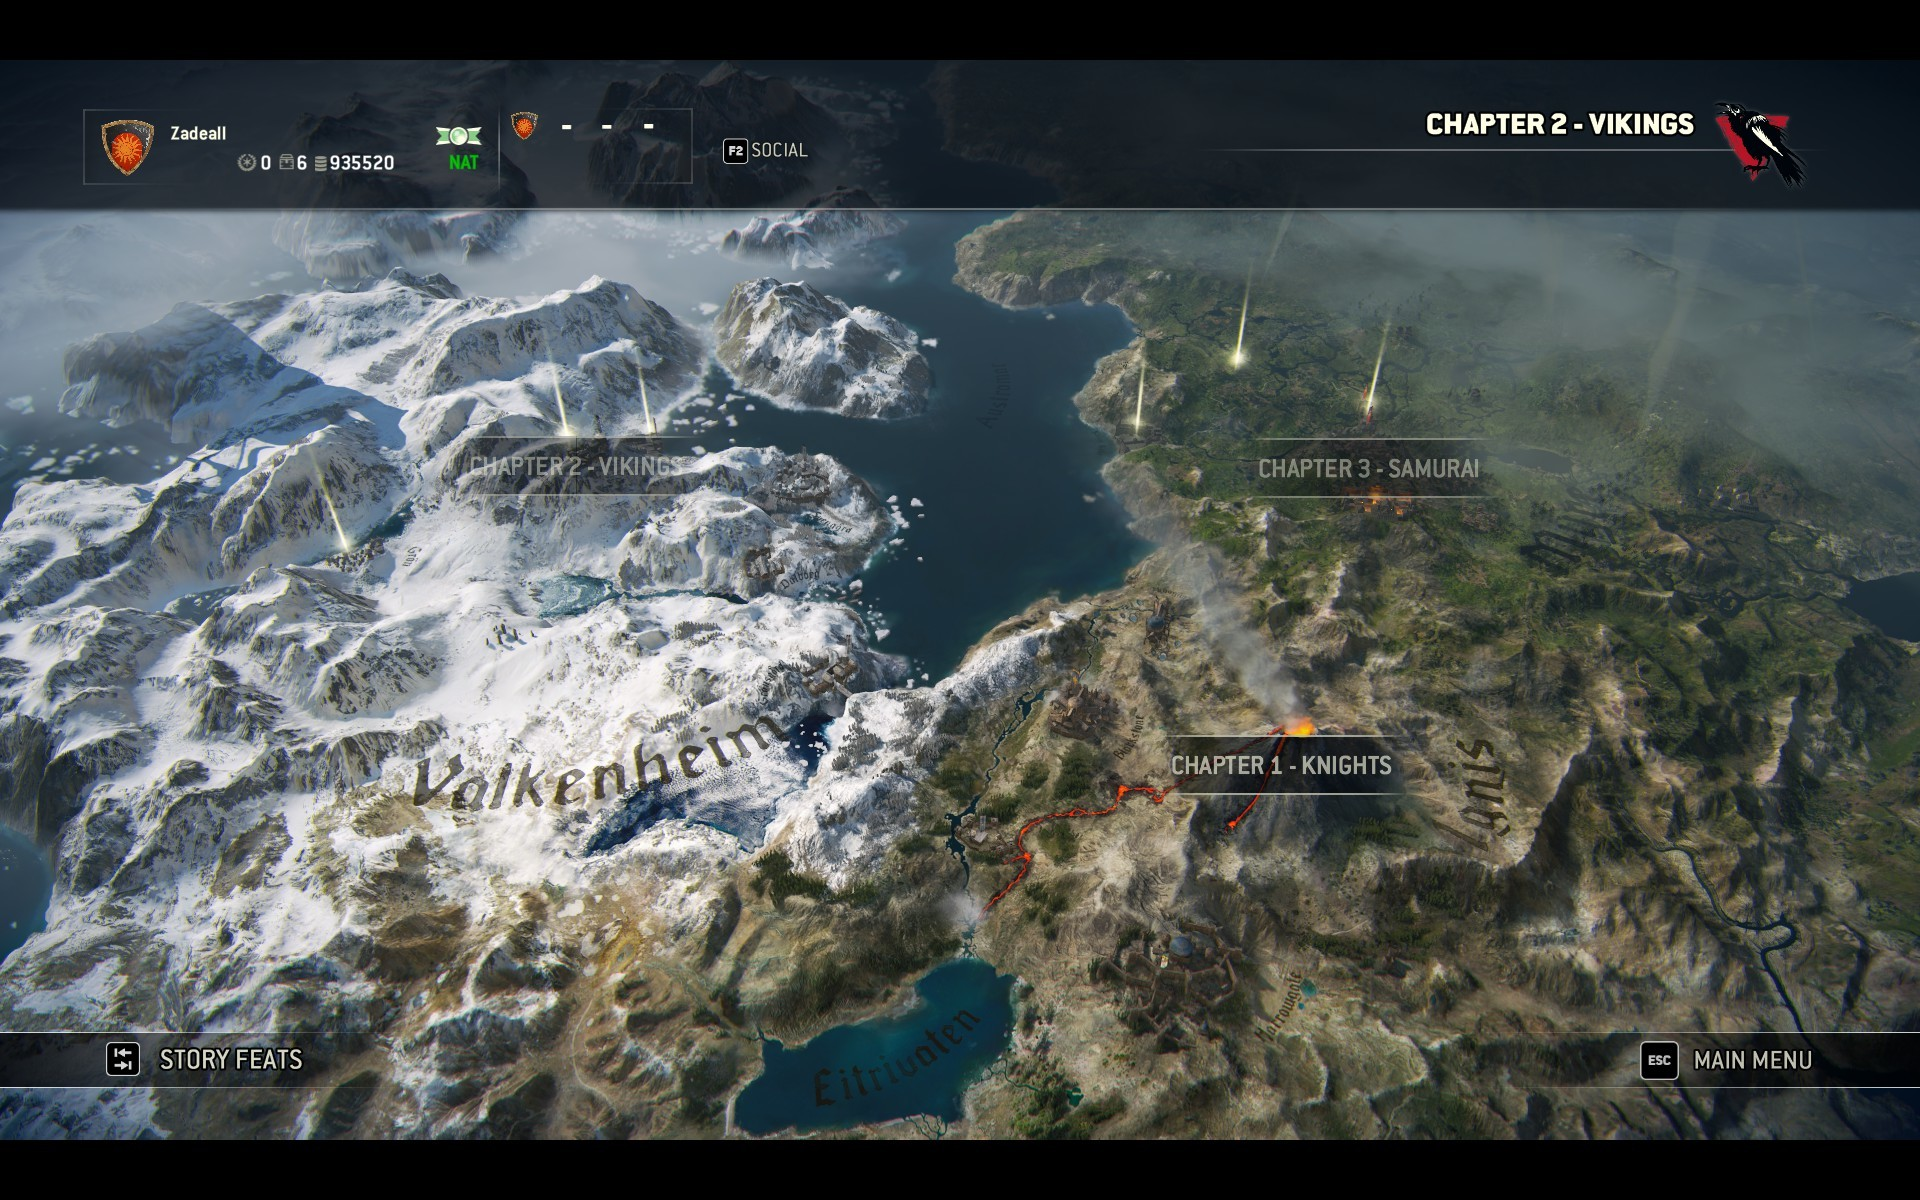 Artstation for honor andrew waddingham shot of the world map i helped build using world machine and photoshop gumiabroncs